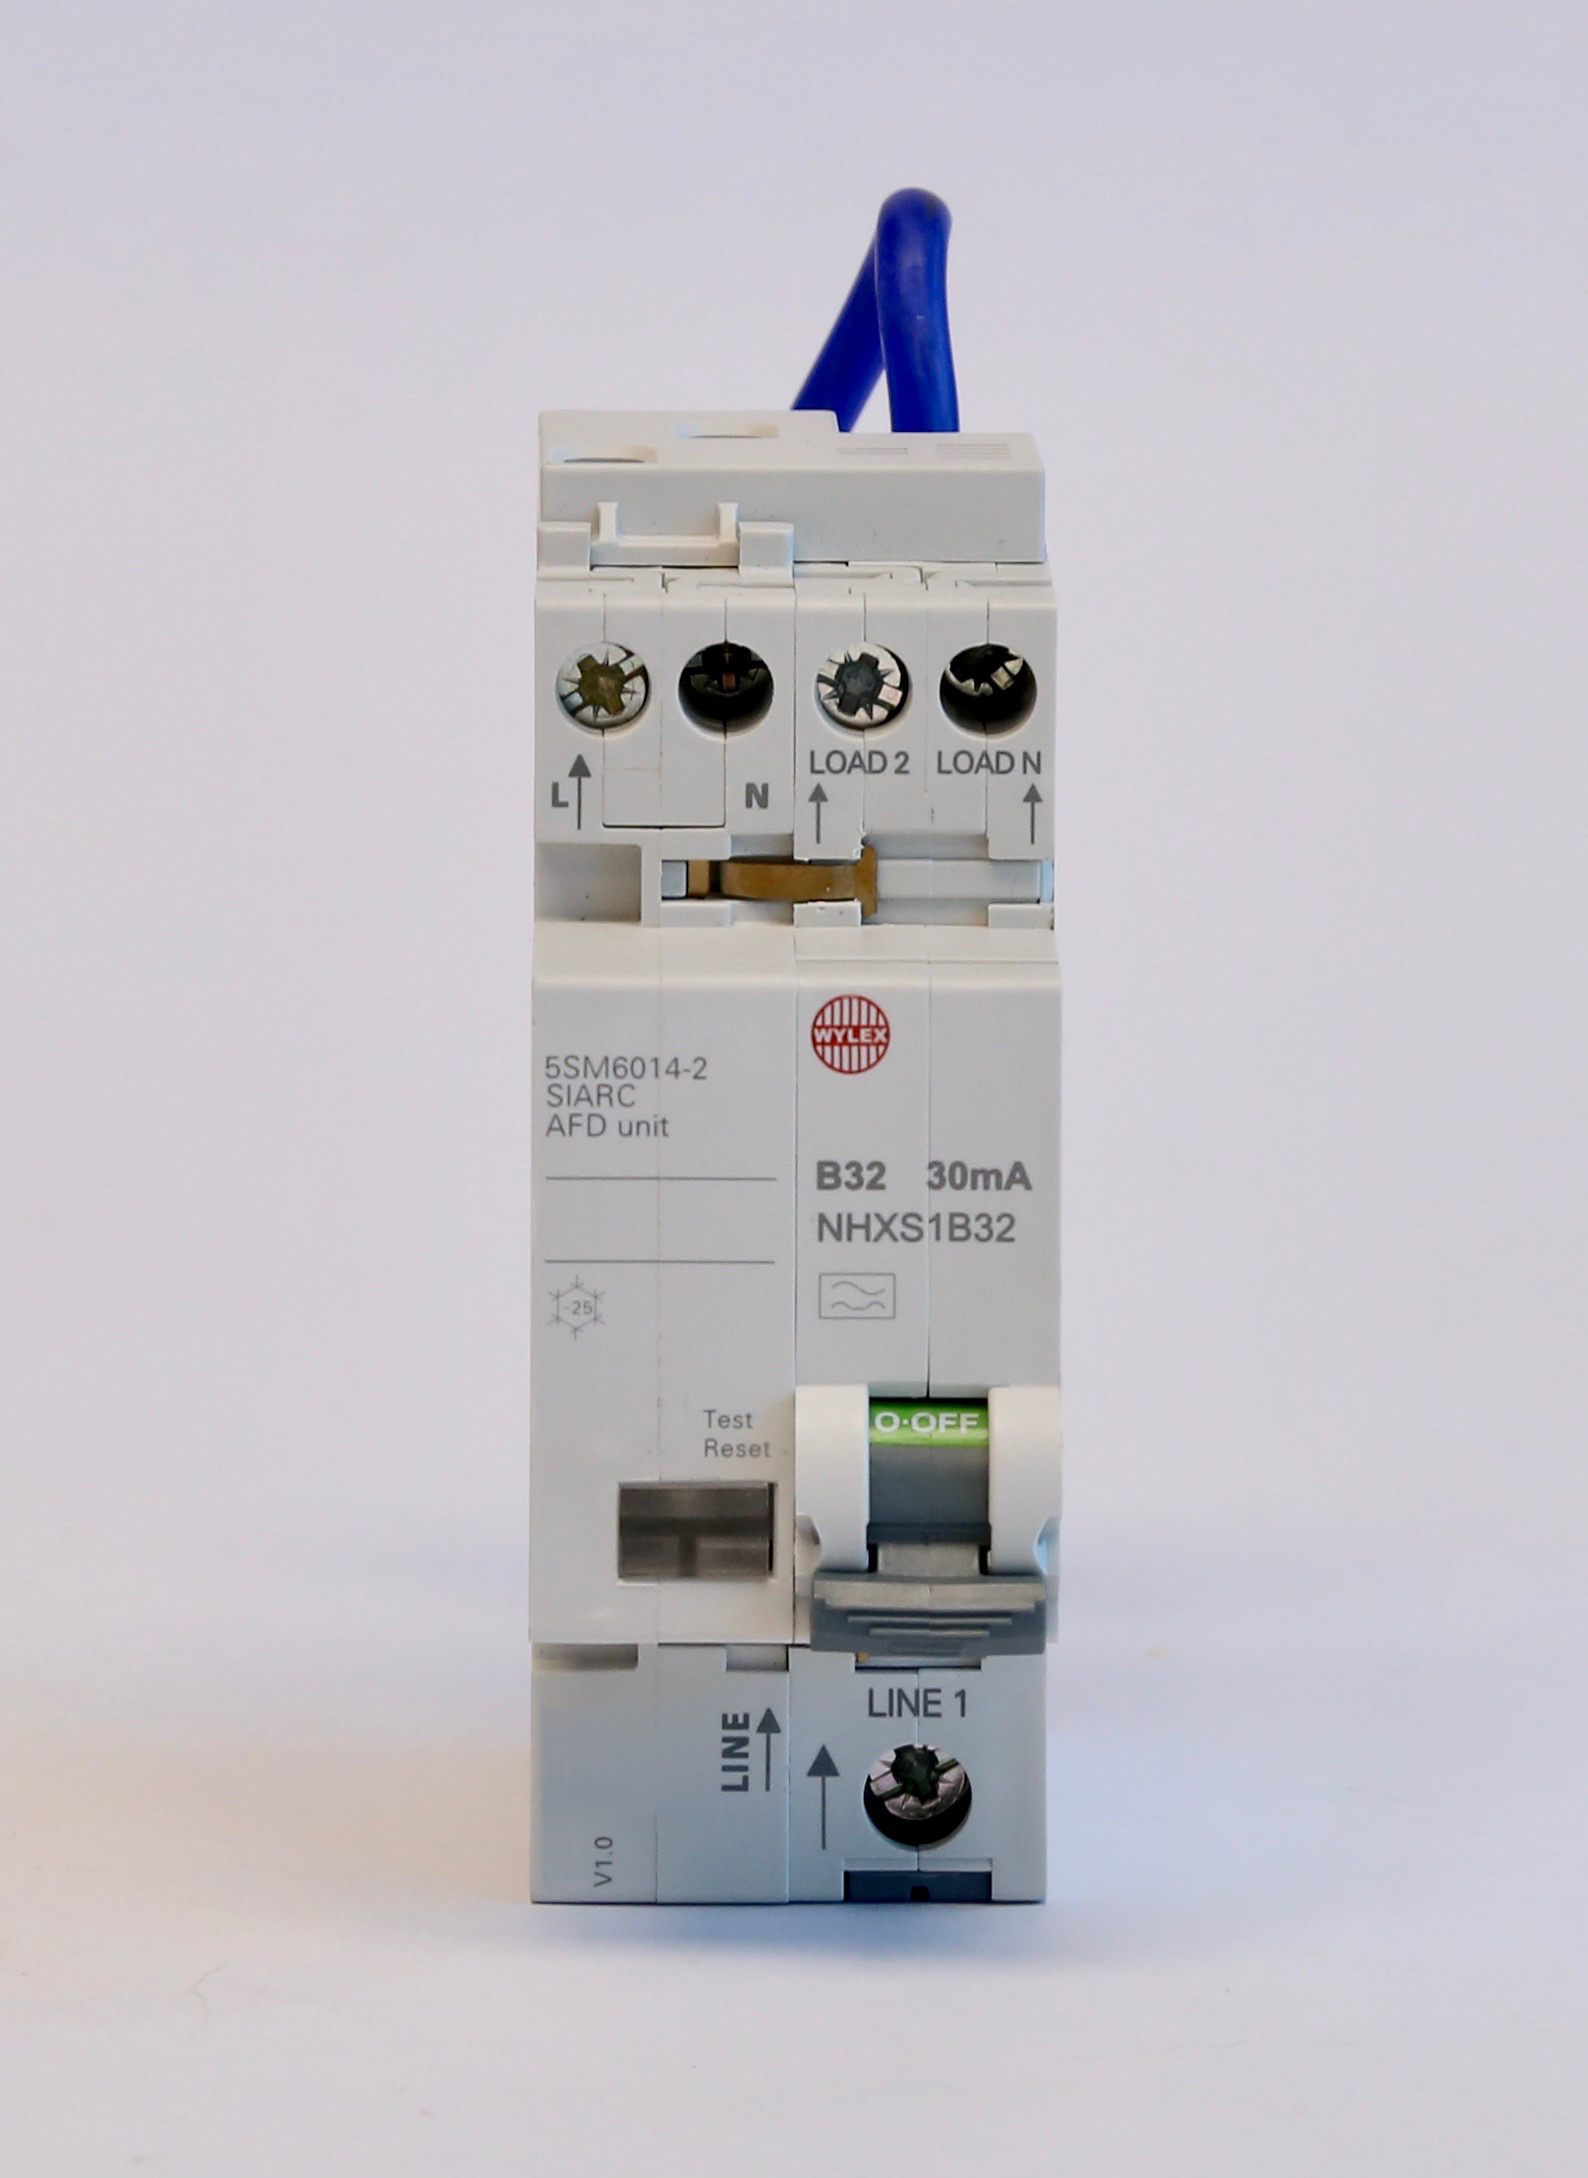 Arc Fault Protection Requirements Recommendations Professional Home Wiring Materials Theres Also A Requirement To Ensure That Electrical Equipment Doesnt Present Fire Hazard Adjacent Material And Protect People Against Harmful